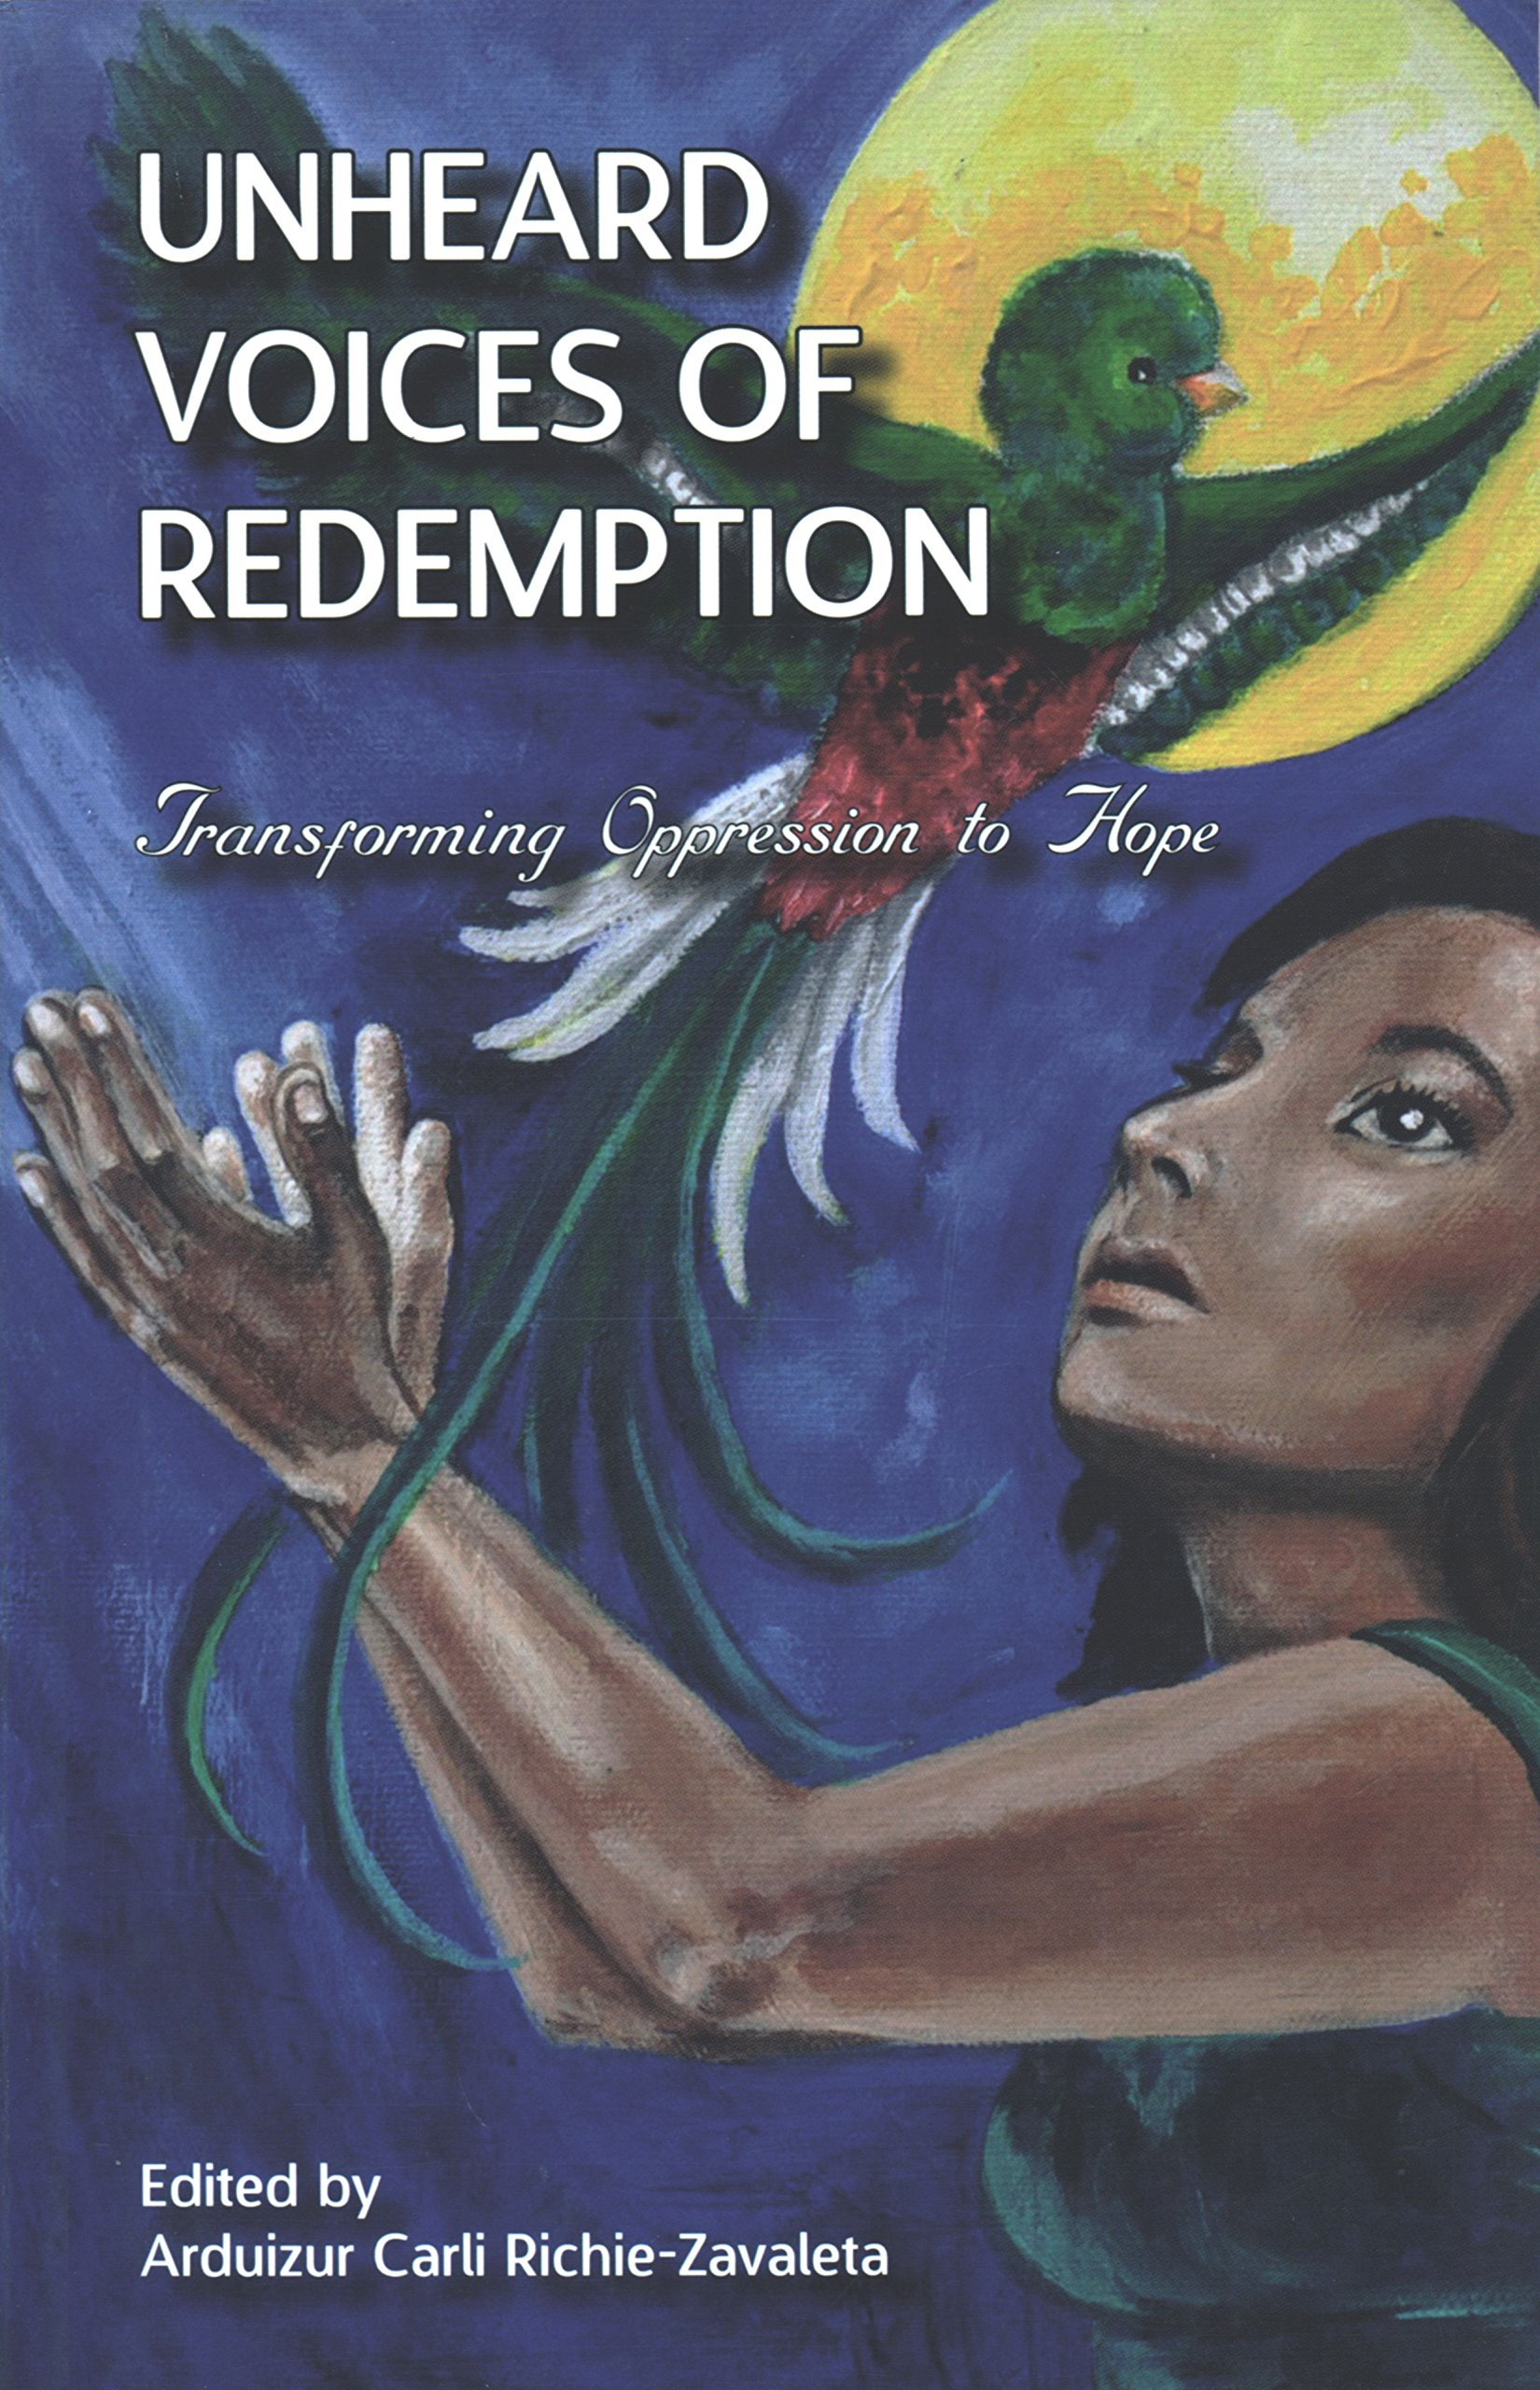 Unheard Voices of Redemption: Transforming Oppression to Hope: A Compilation of Narratives, Poems, and Art on Modern Day Slavery PDF ePub ebook